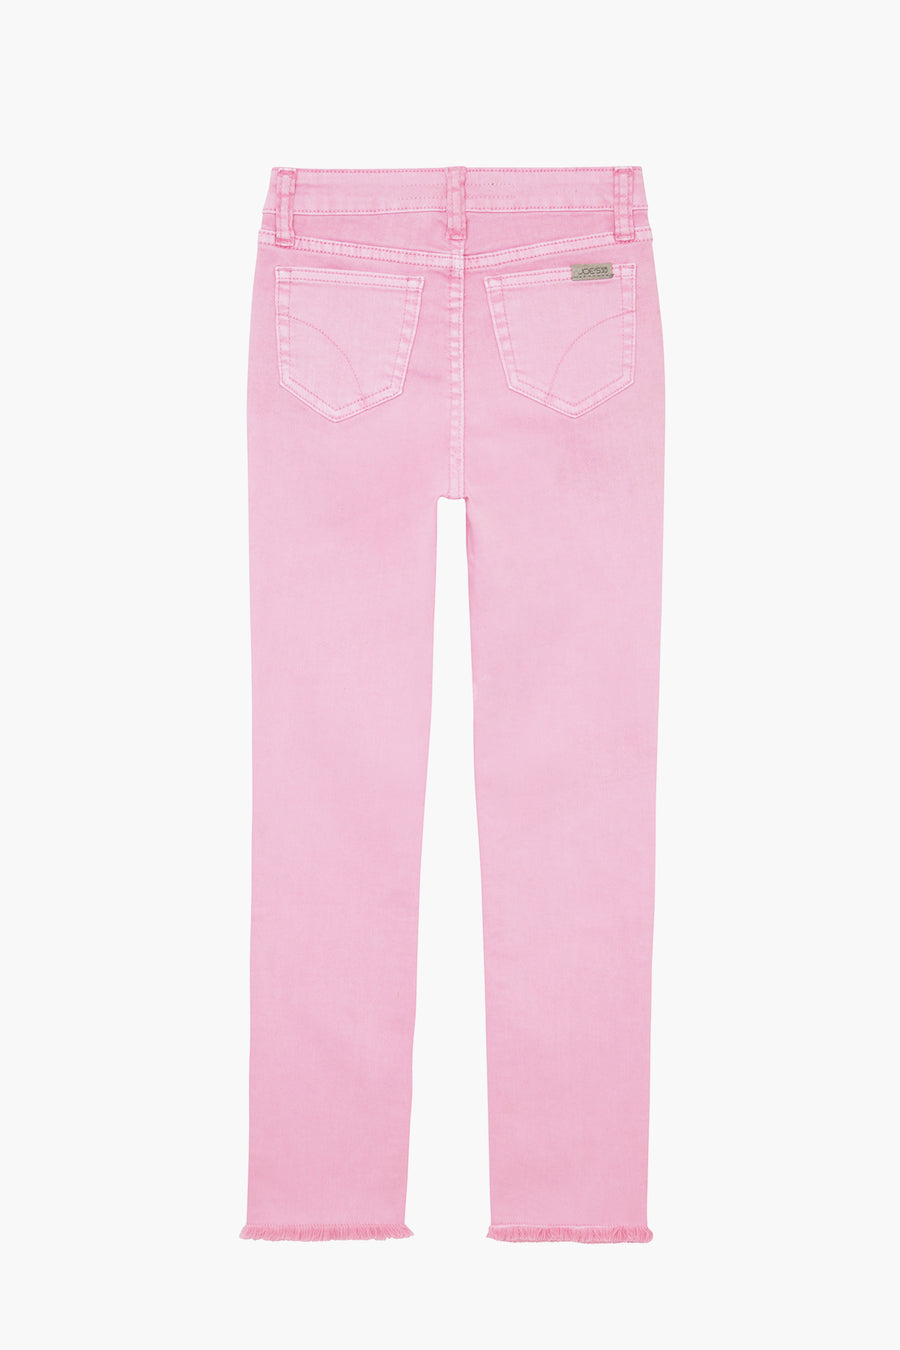 Joe's Jeans Charlie Pink Girls Jeans